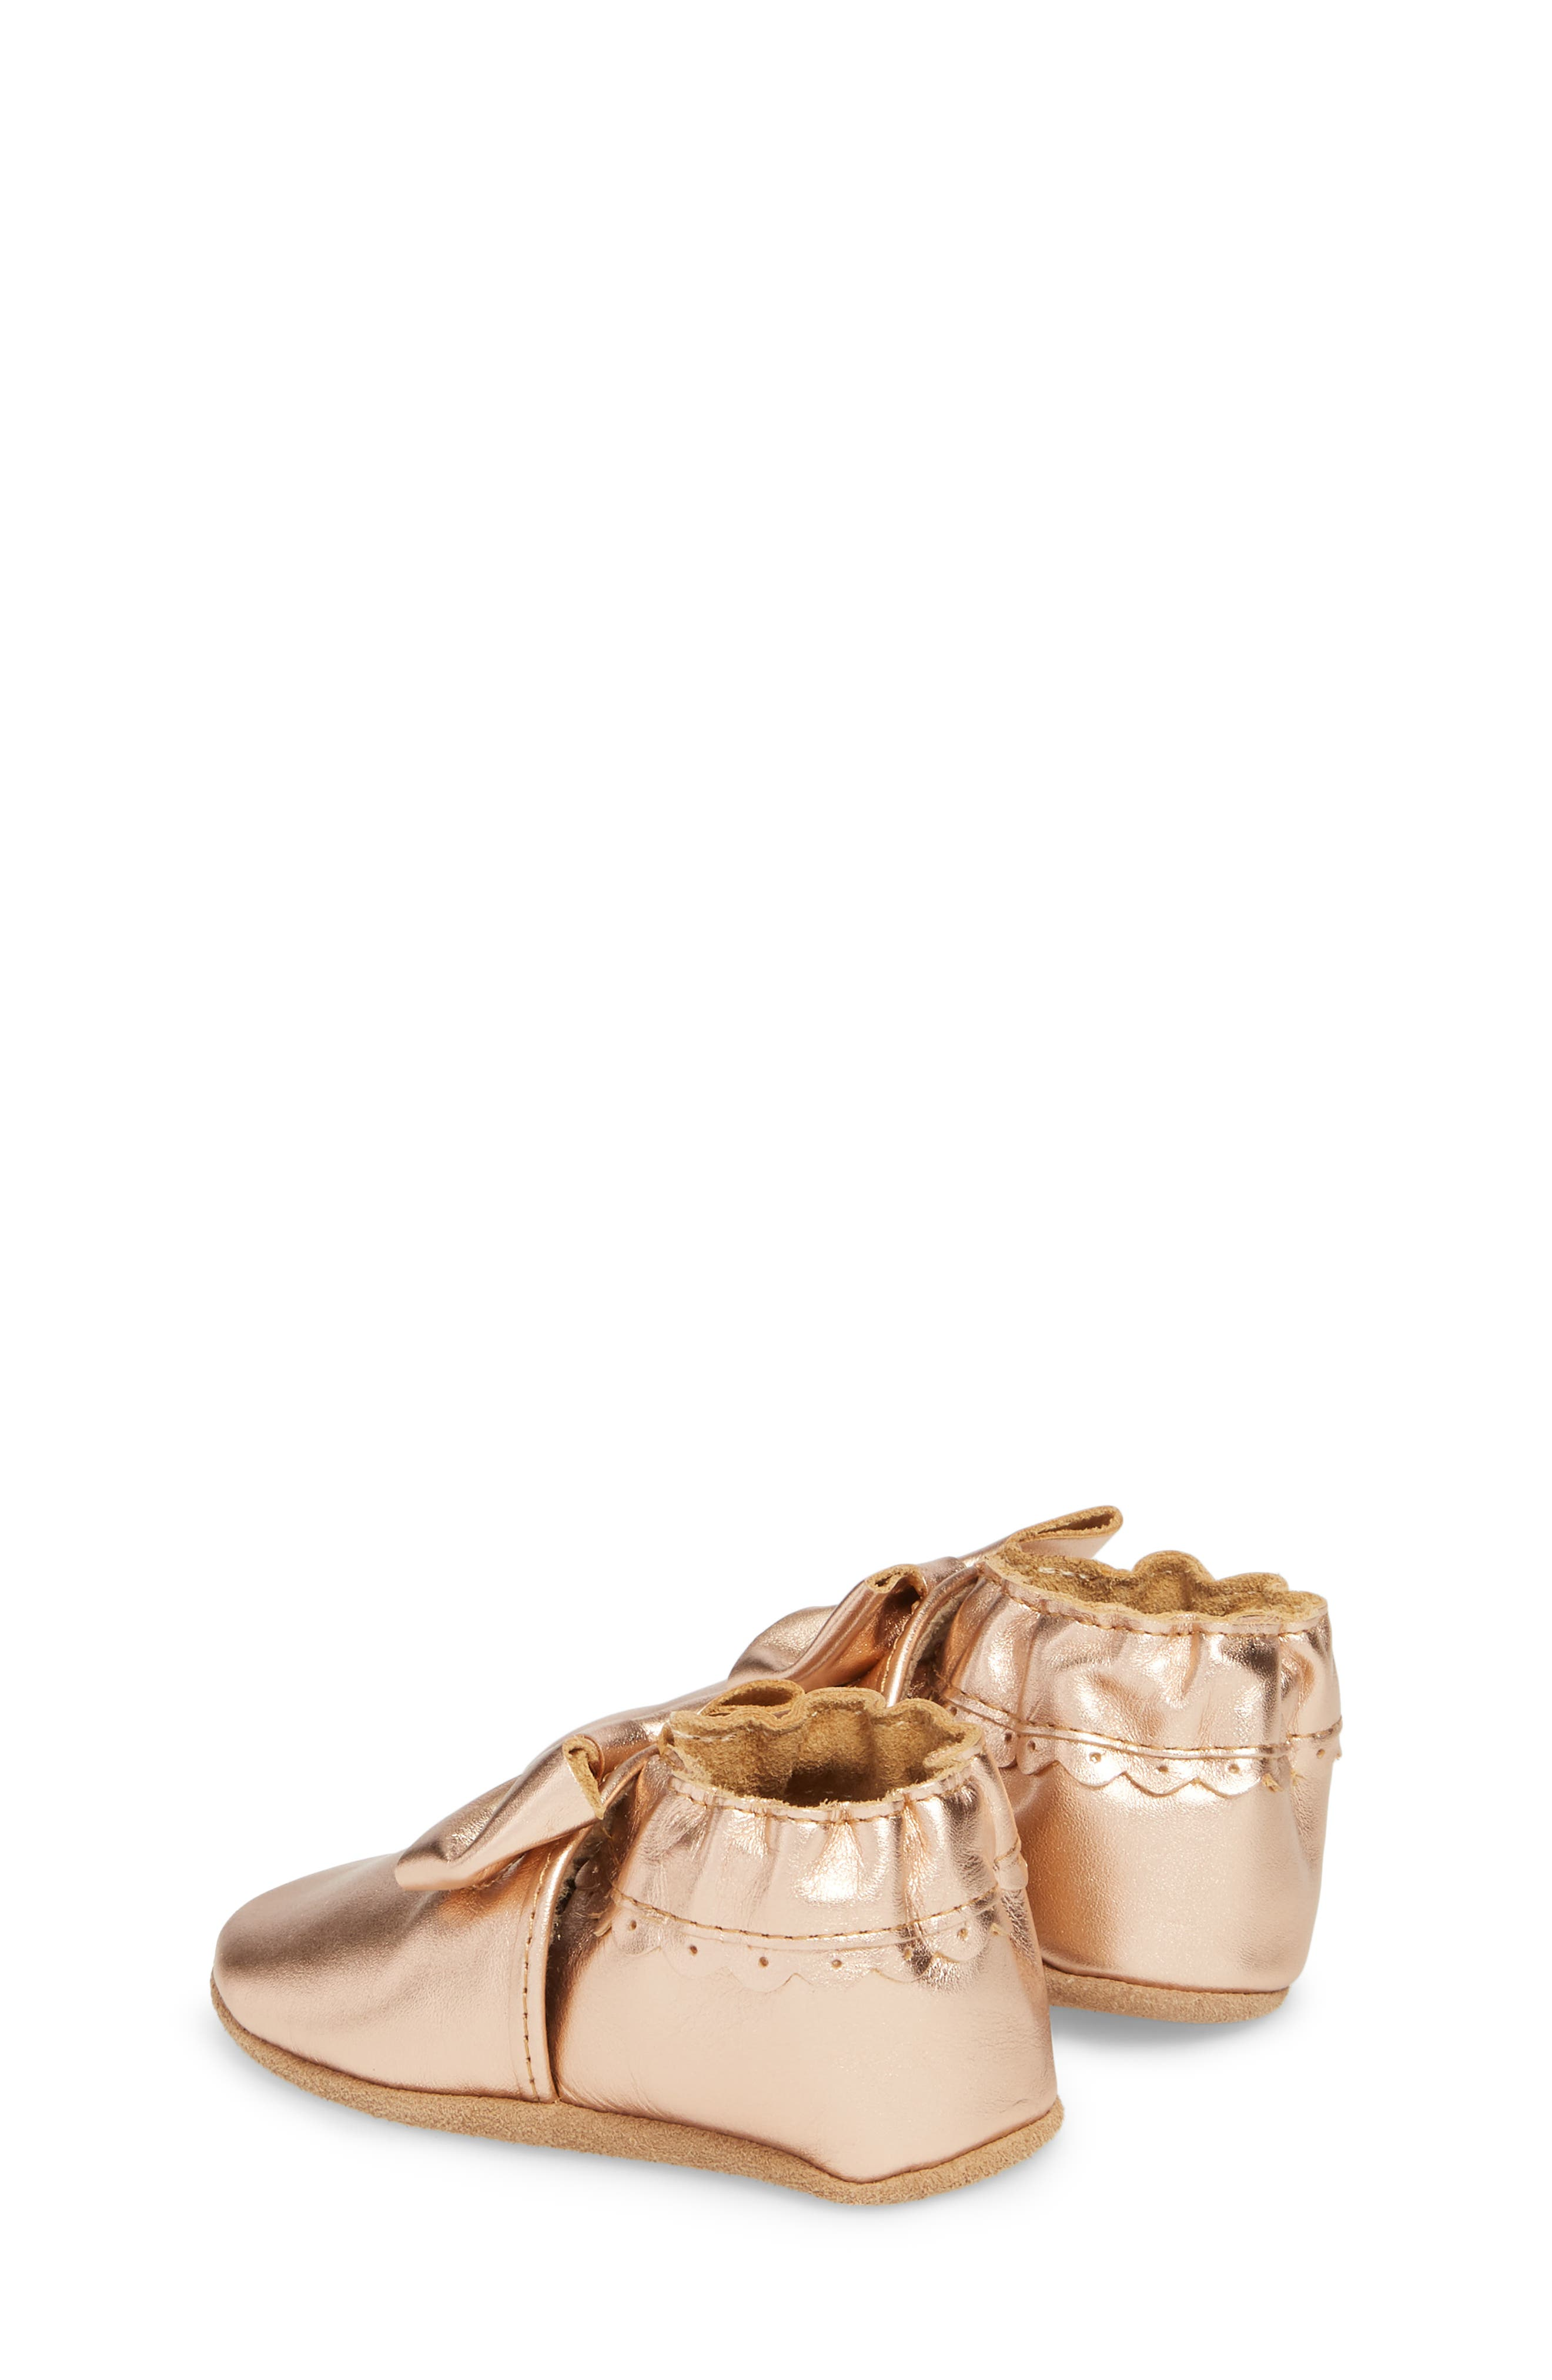 Rosie Crib Shoes,                             Alternate thumbnail 2, color,                             Rose Gold